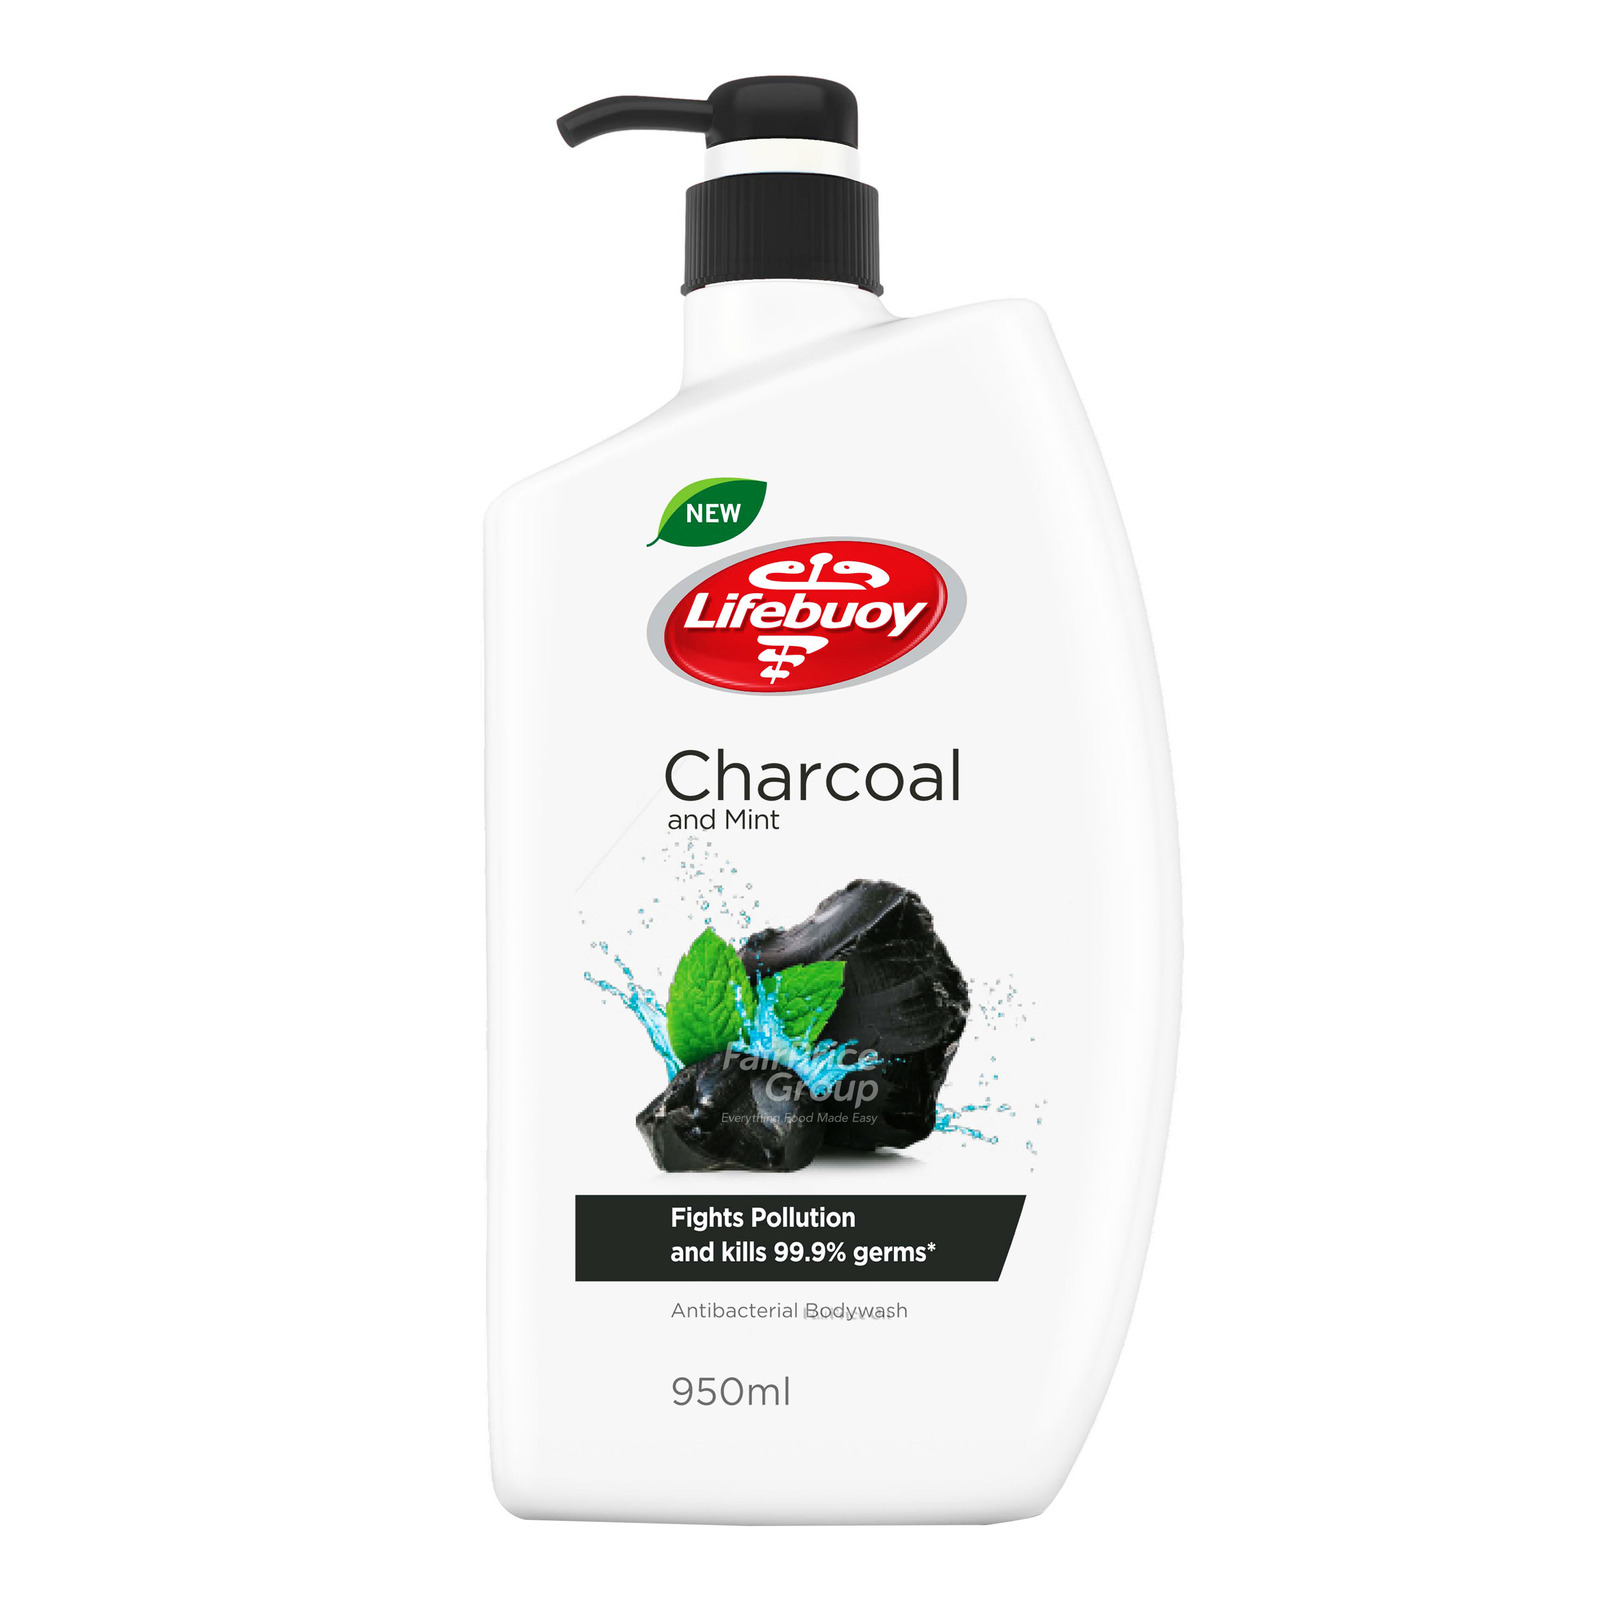 Lifebuoy Antibacterial Body Wash - Charcoal